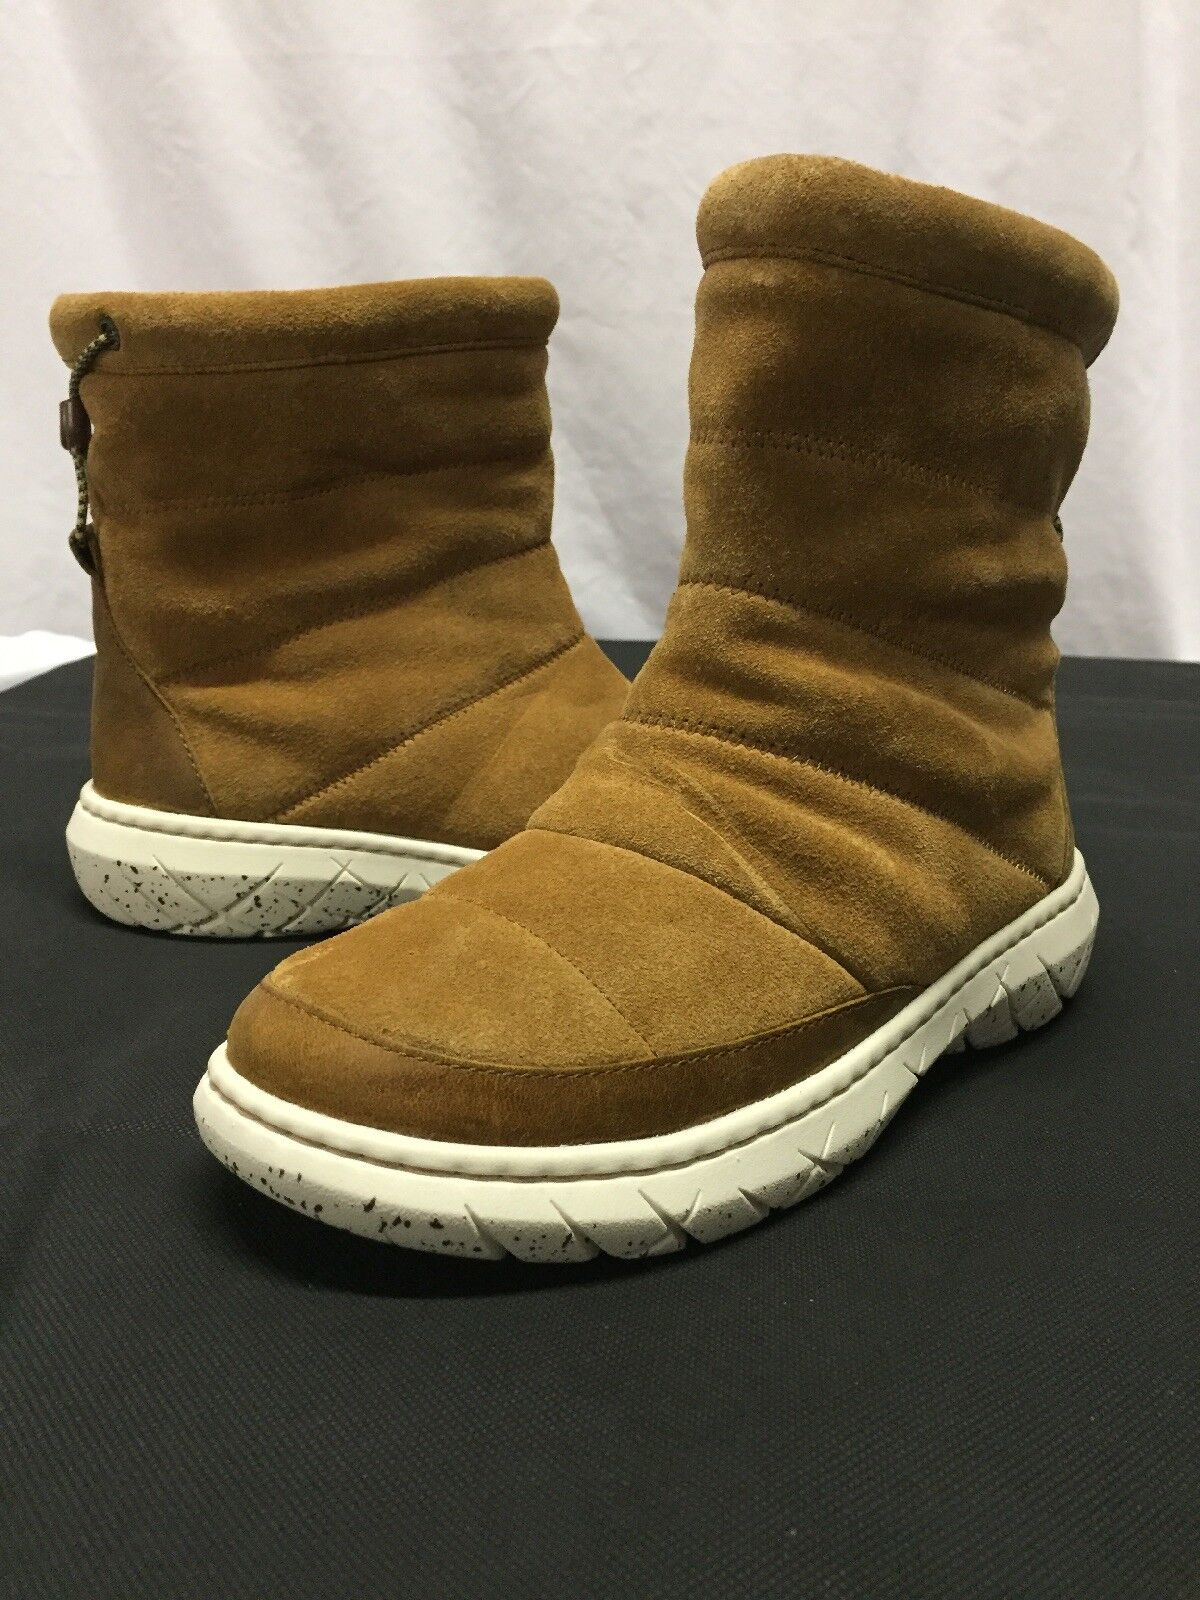 Sperry Top Sider GREENLAND Women's Apres Sea SNOW Boots, Tan Suede Size 7B